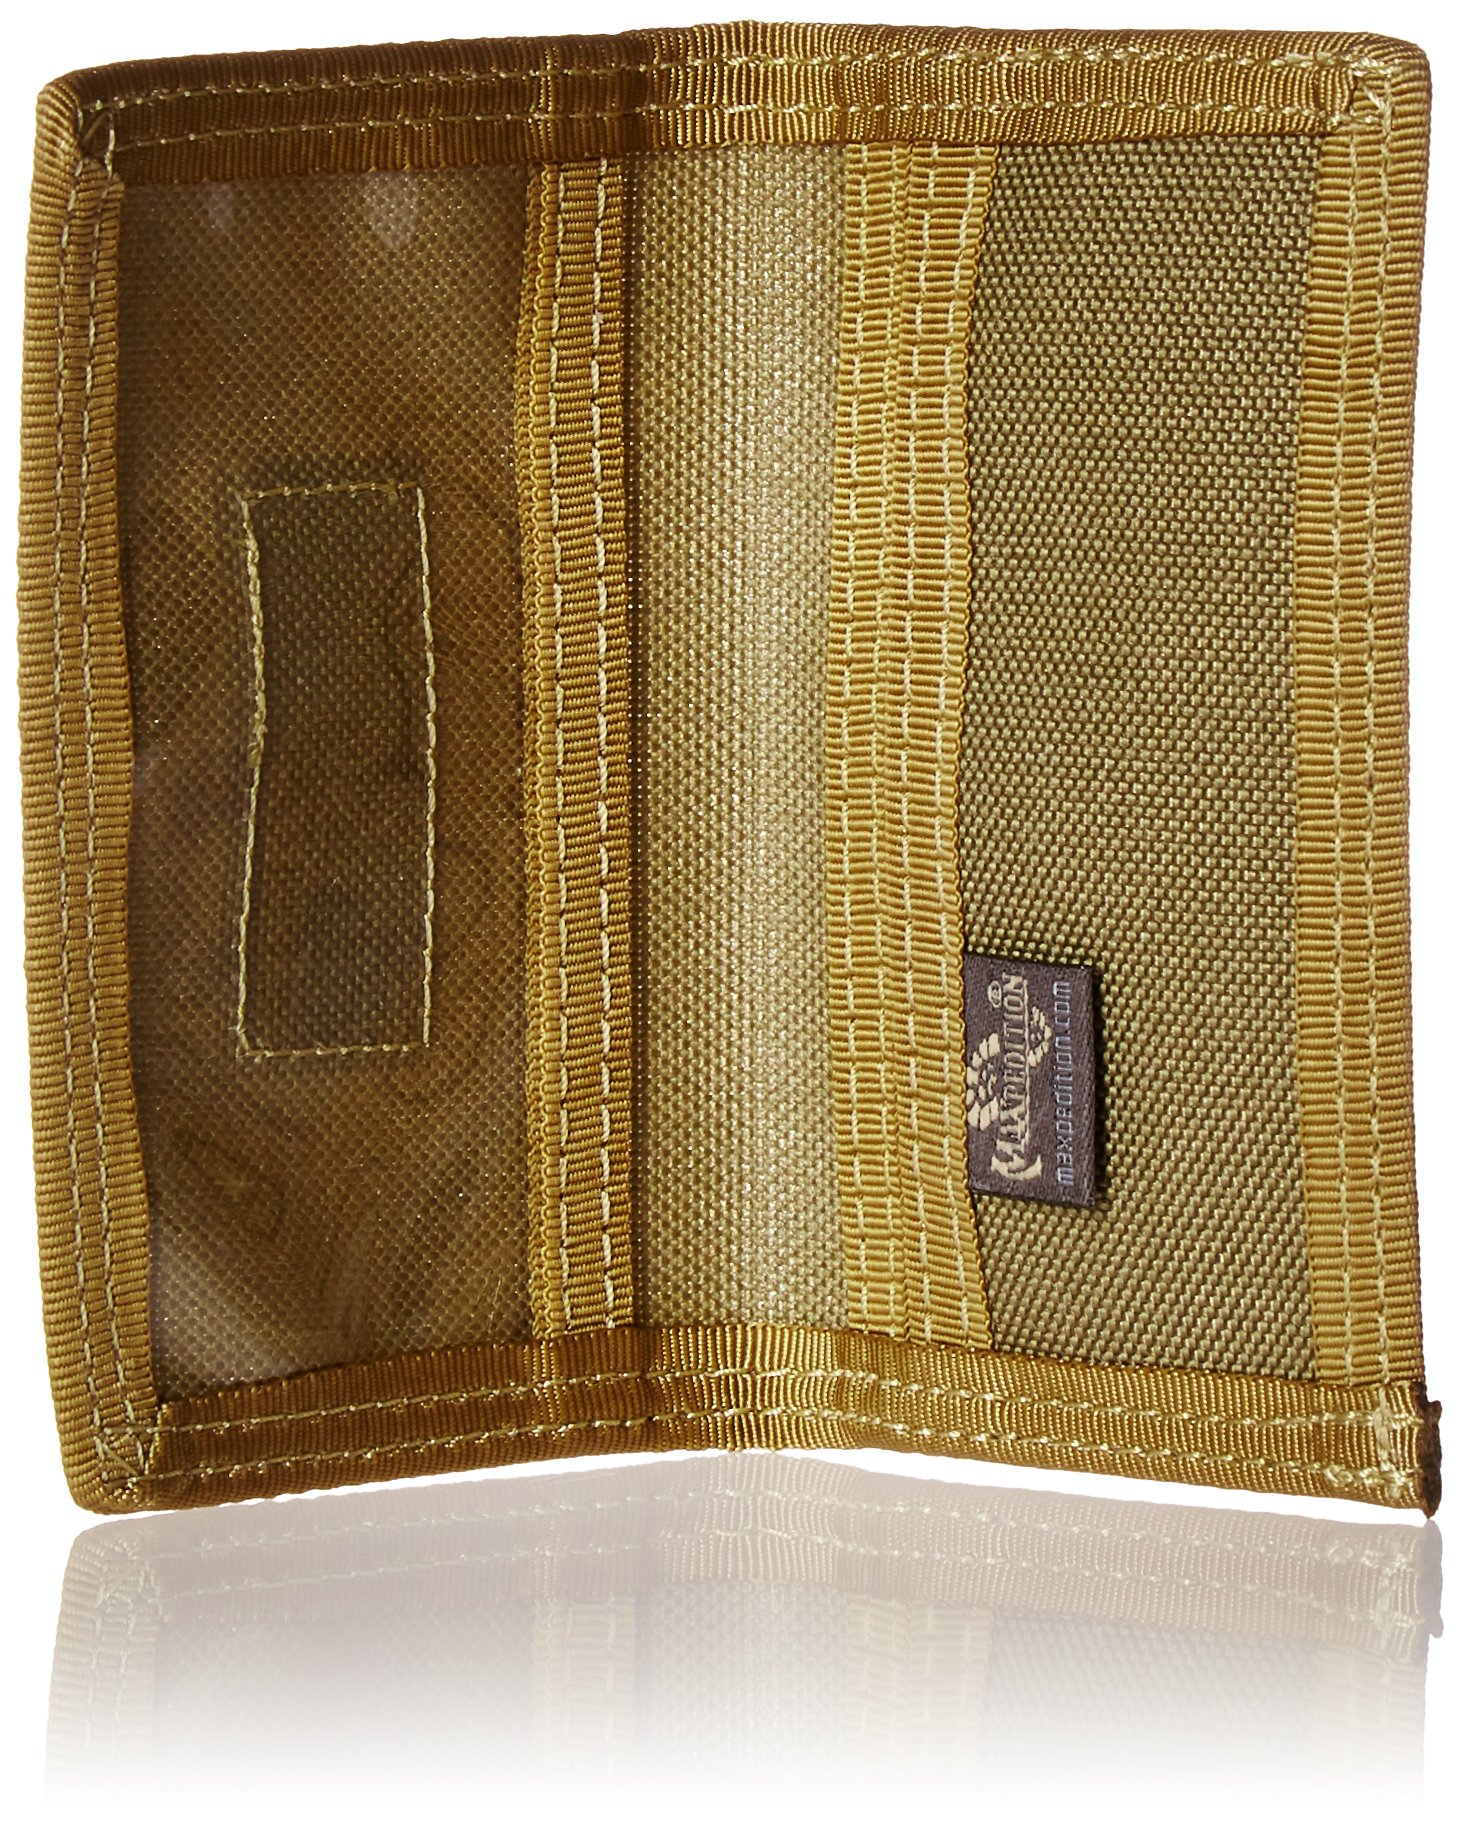 Maxpedition Gear Micro Wallet by Maxpedition (Image #1)